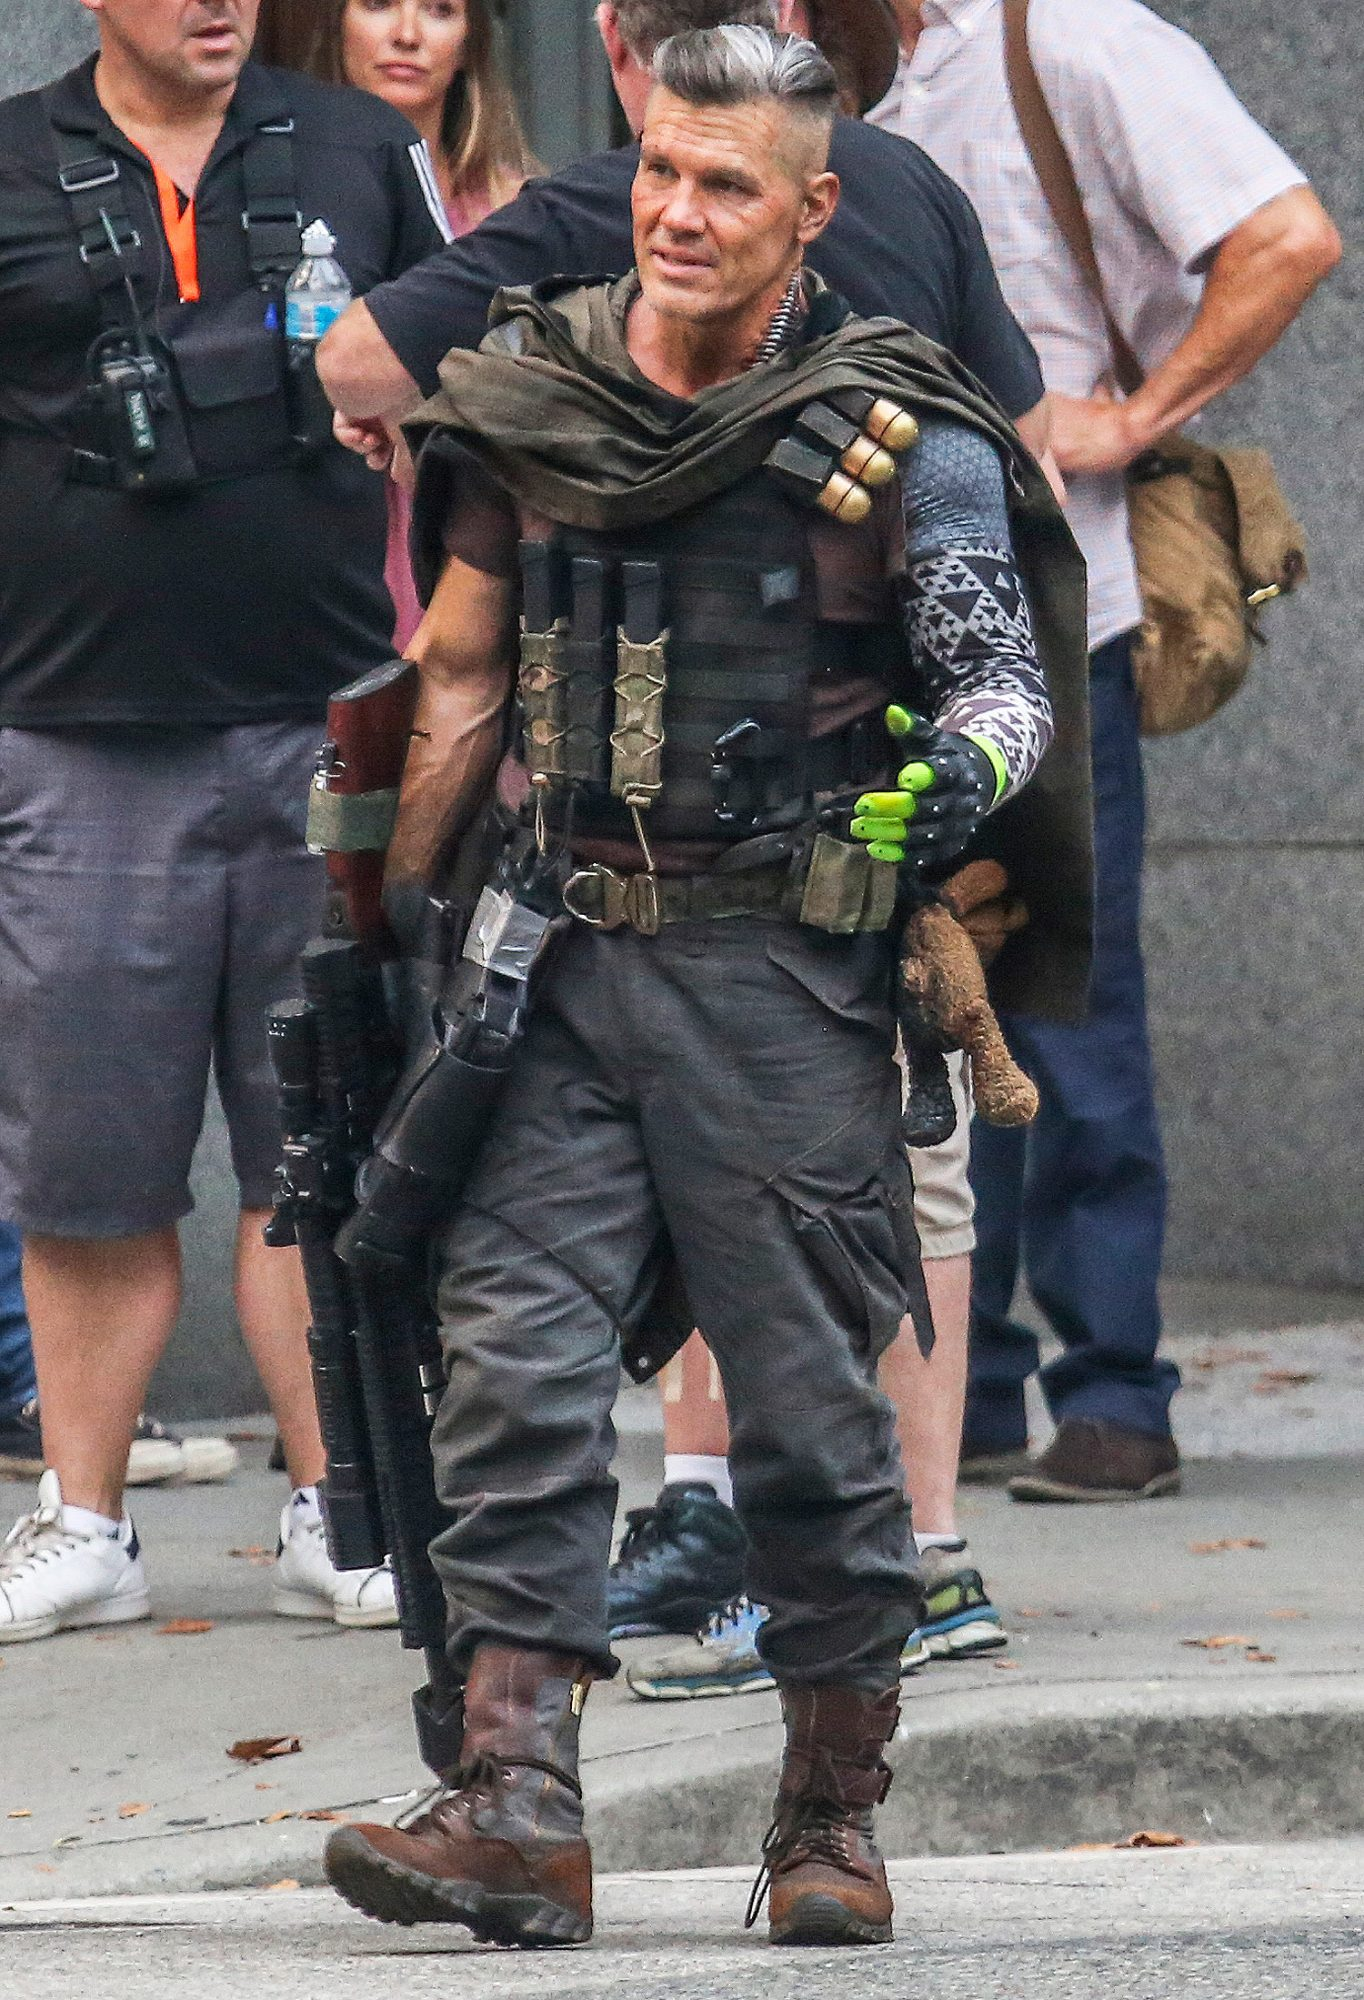 *First Look* Josh Brolin in Full Costume as Cable on Deadpool 2 Set